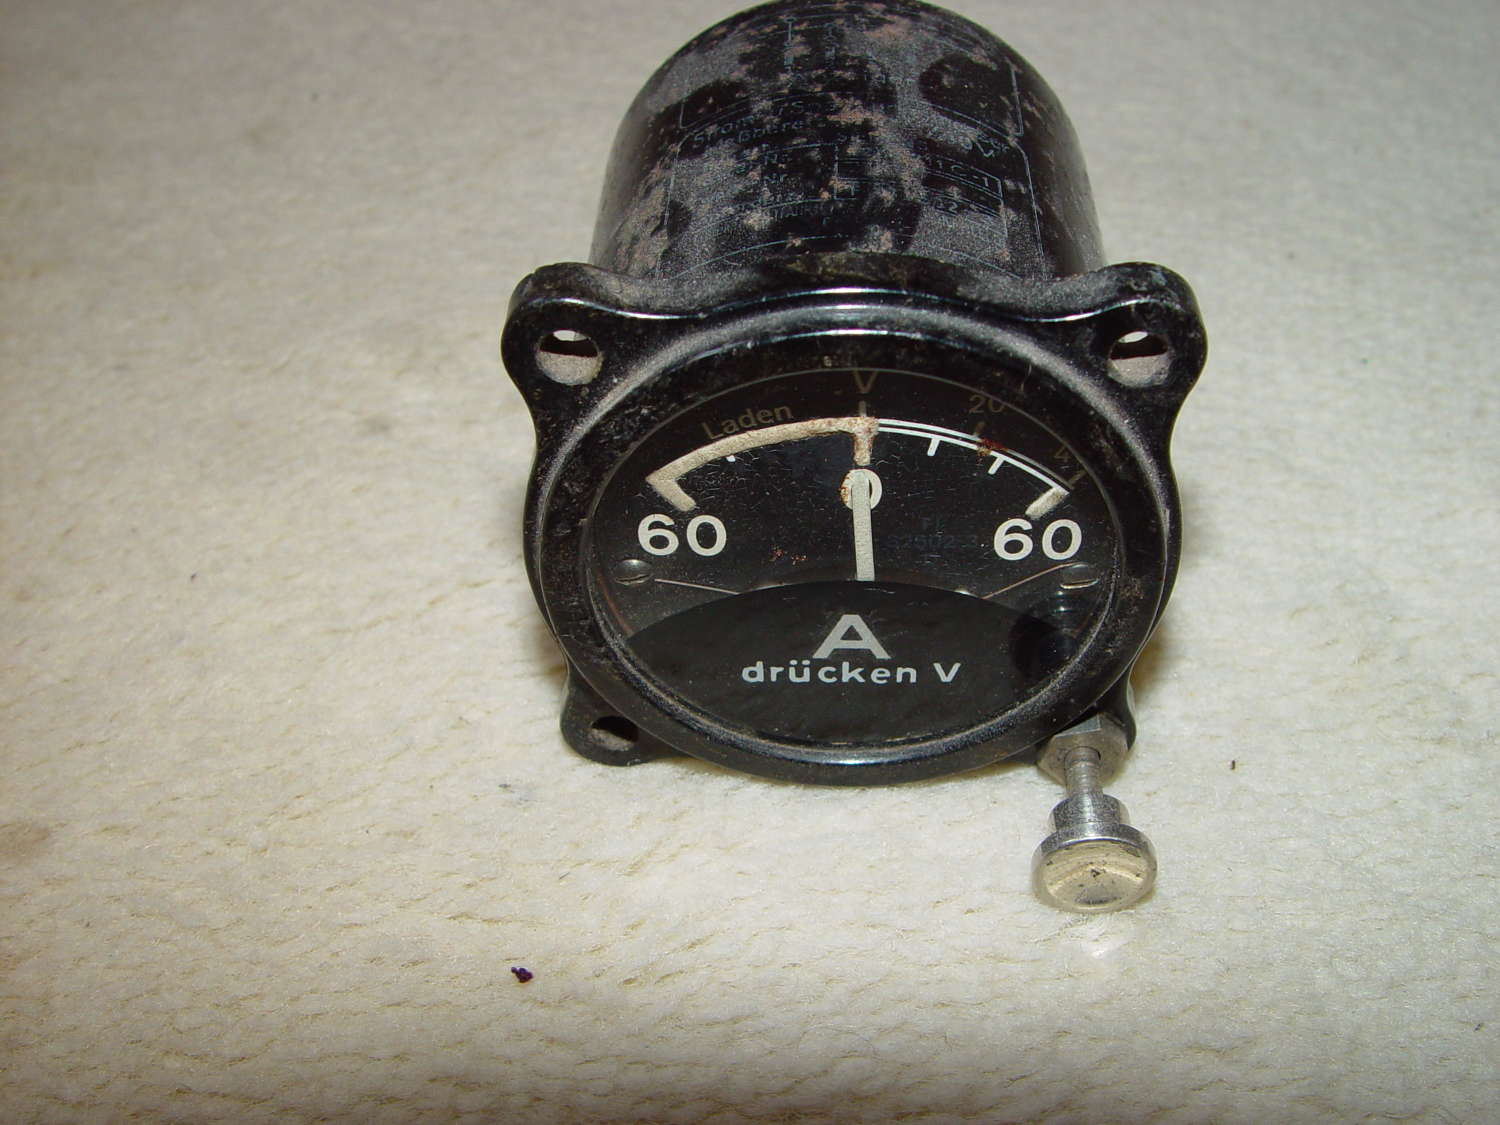 German Luftwaffe electrical charging instrument 60A